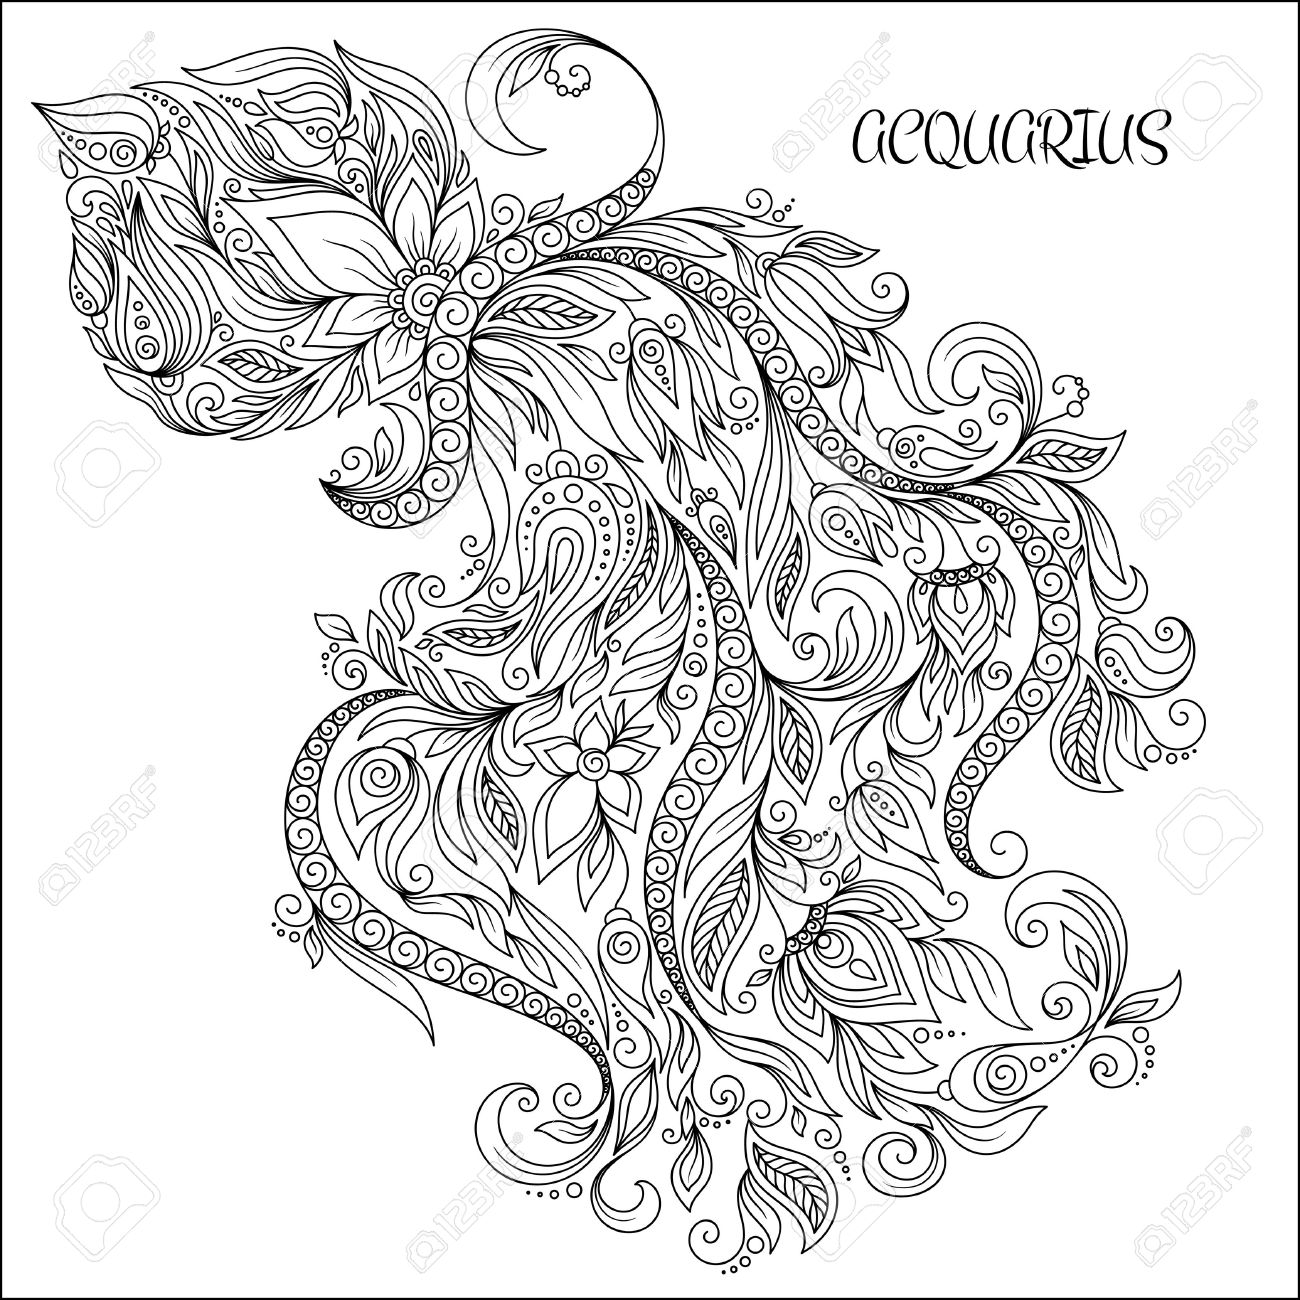 Pattern for coloring book. Hand drawn line flowers art of zodiac Aquarius. Horoscope symbol for your use. For tattoo art, coloring books set. - 49172493